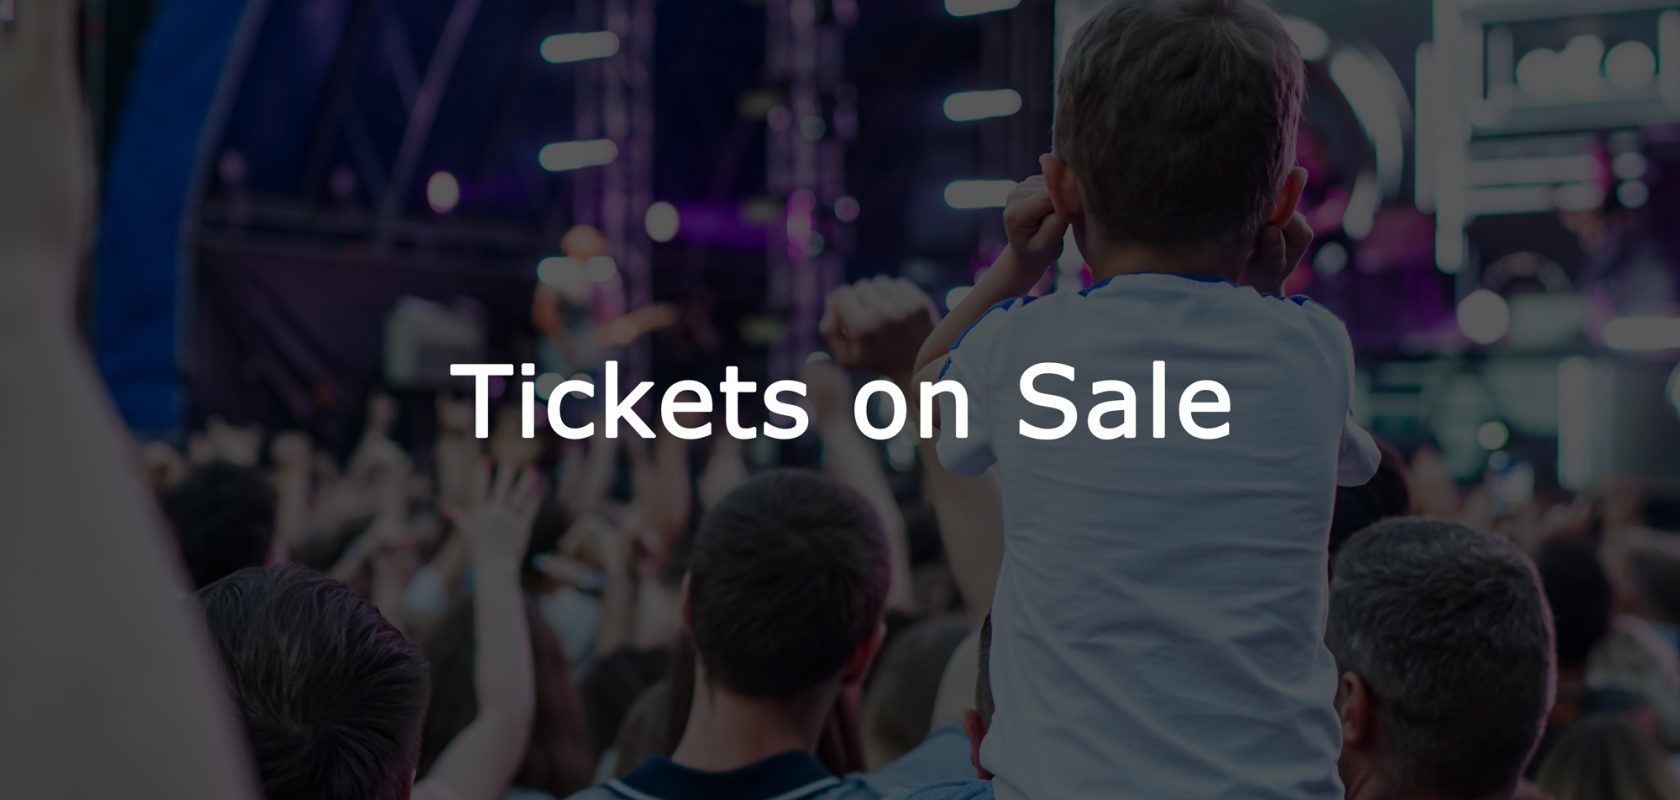 Concert Tickets on Sale